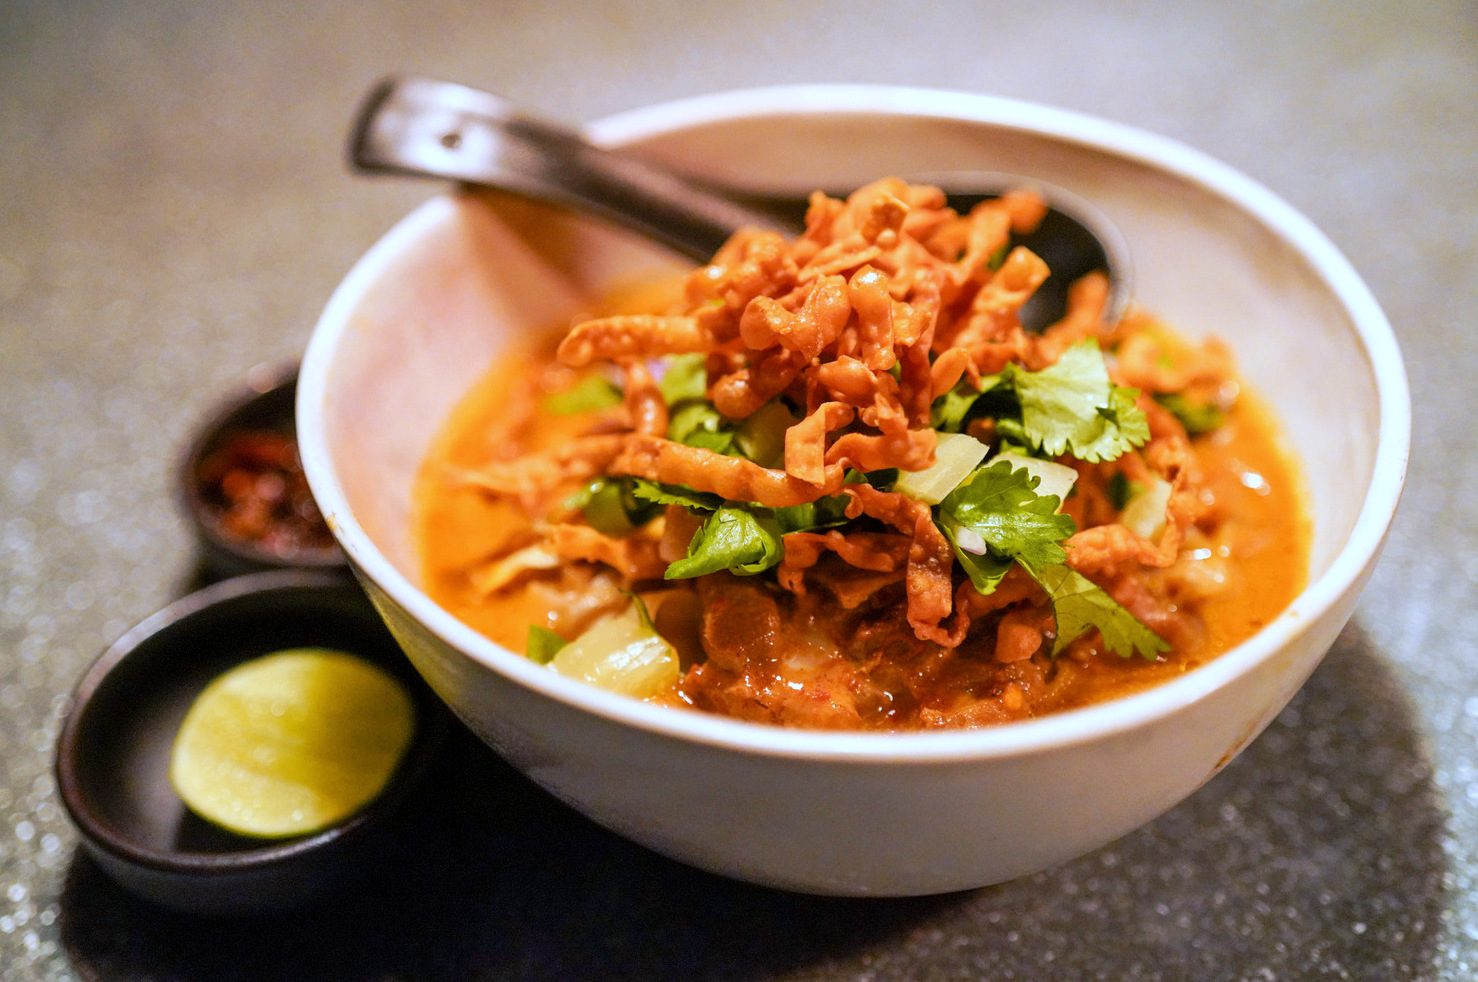 Krung Thep: Noodle Bar By Day